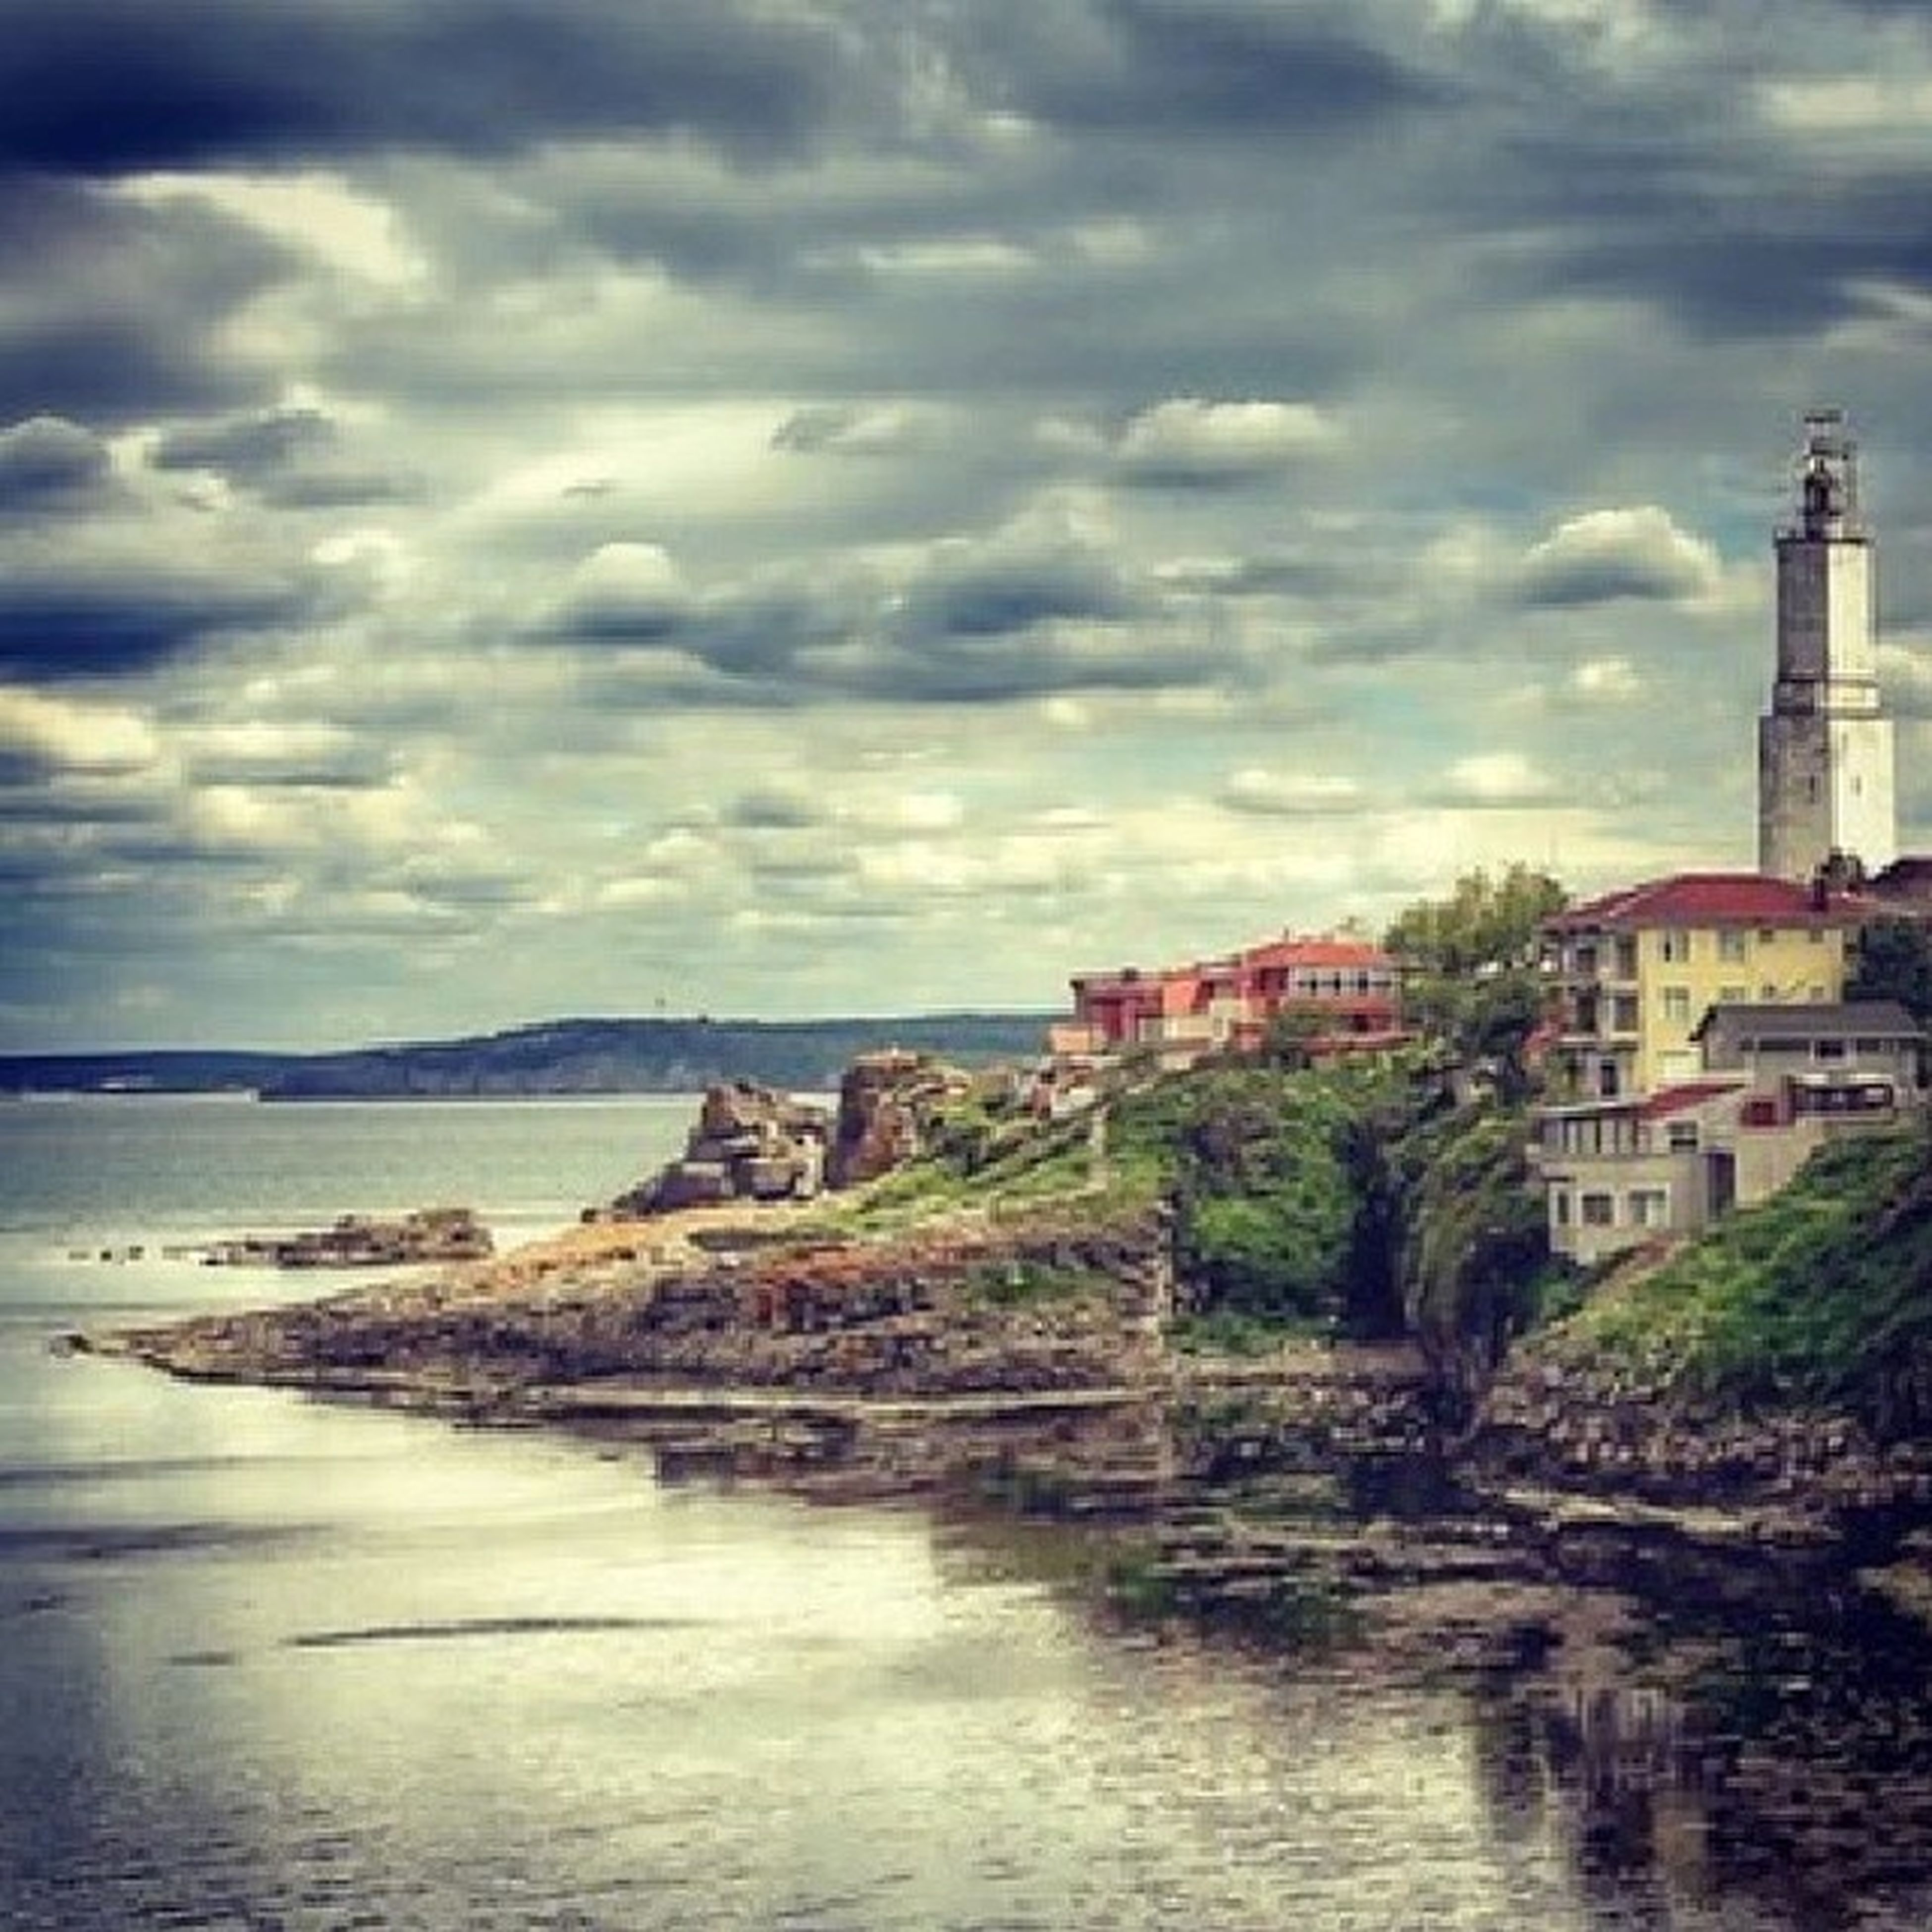 water, sky, building exterior, architecture, sea, built structure, cloud - sky, cloudy, cloud, waterfront, tranquil scene, scenics, overcast, tranquility, horizon over water, nature, house, beauty in nature, weather, coastline